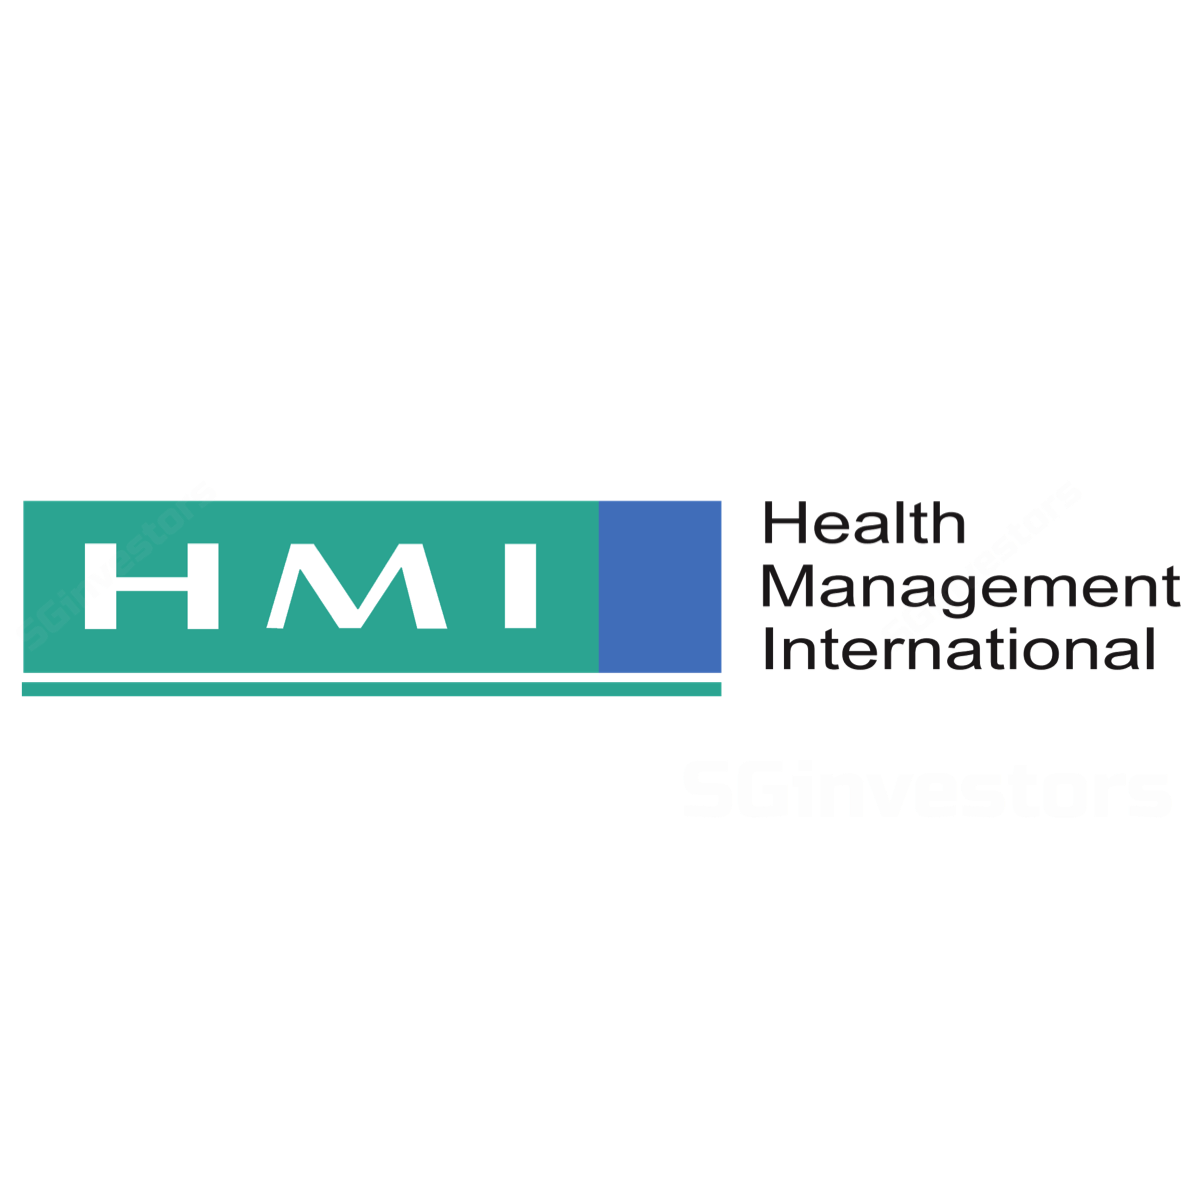 Health Management International (HMI SP) - UOB Kay Hian 2017-09-11: Key Marketing Takeaways; Resilient Operations With Strong Earnings Visibility